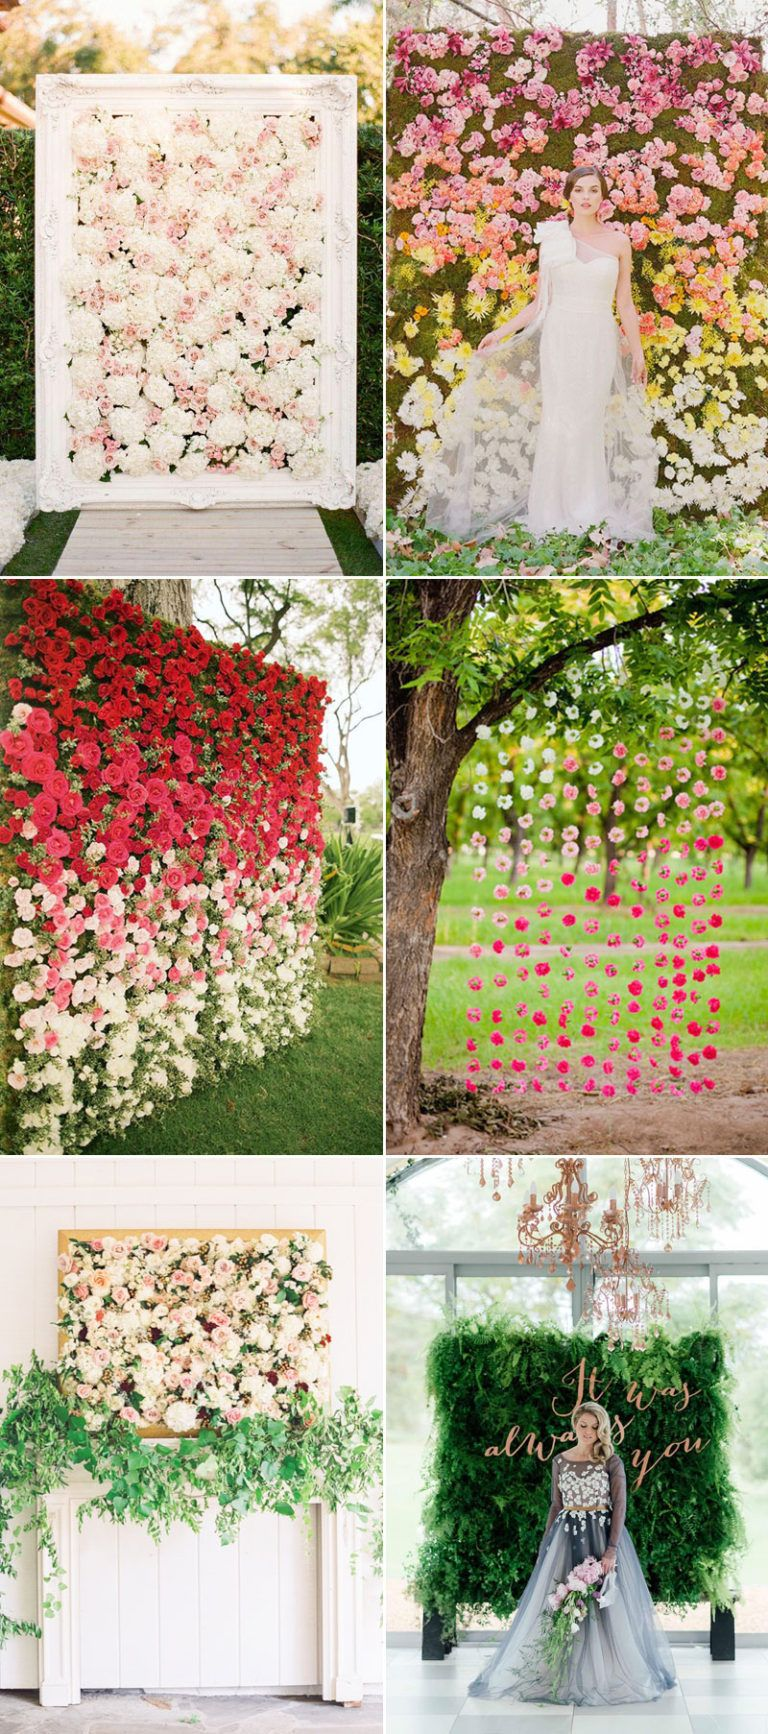 Pin by Toe Mayer on Enchanted Garden Wedding | Pinterest | Enchanted ...